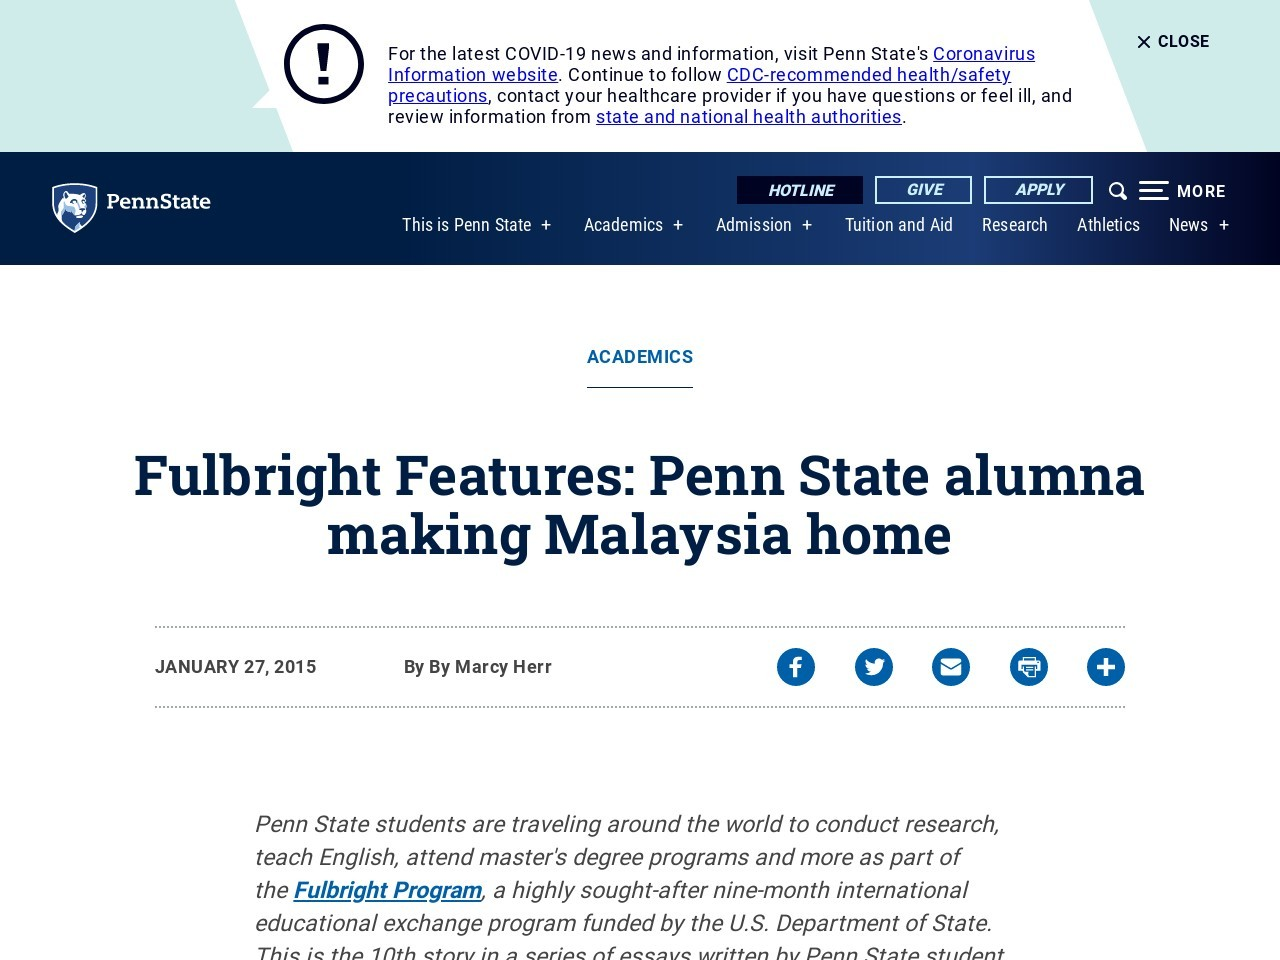 Fulbright Features: Penn State alumna making Malaysia home